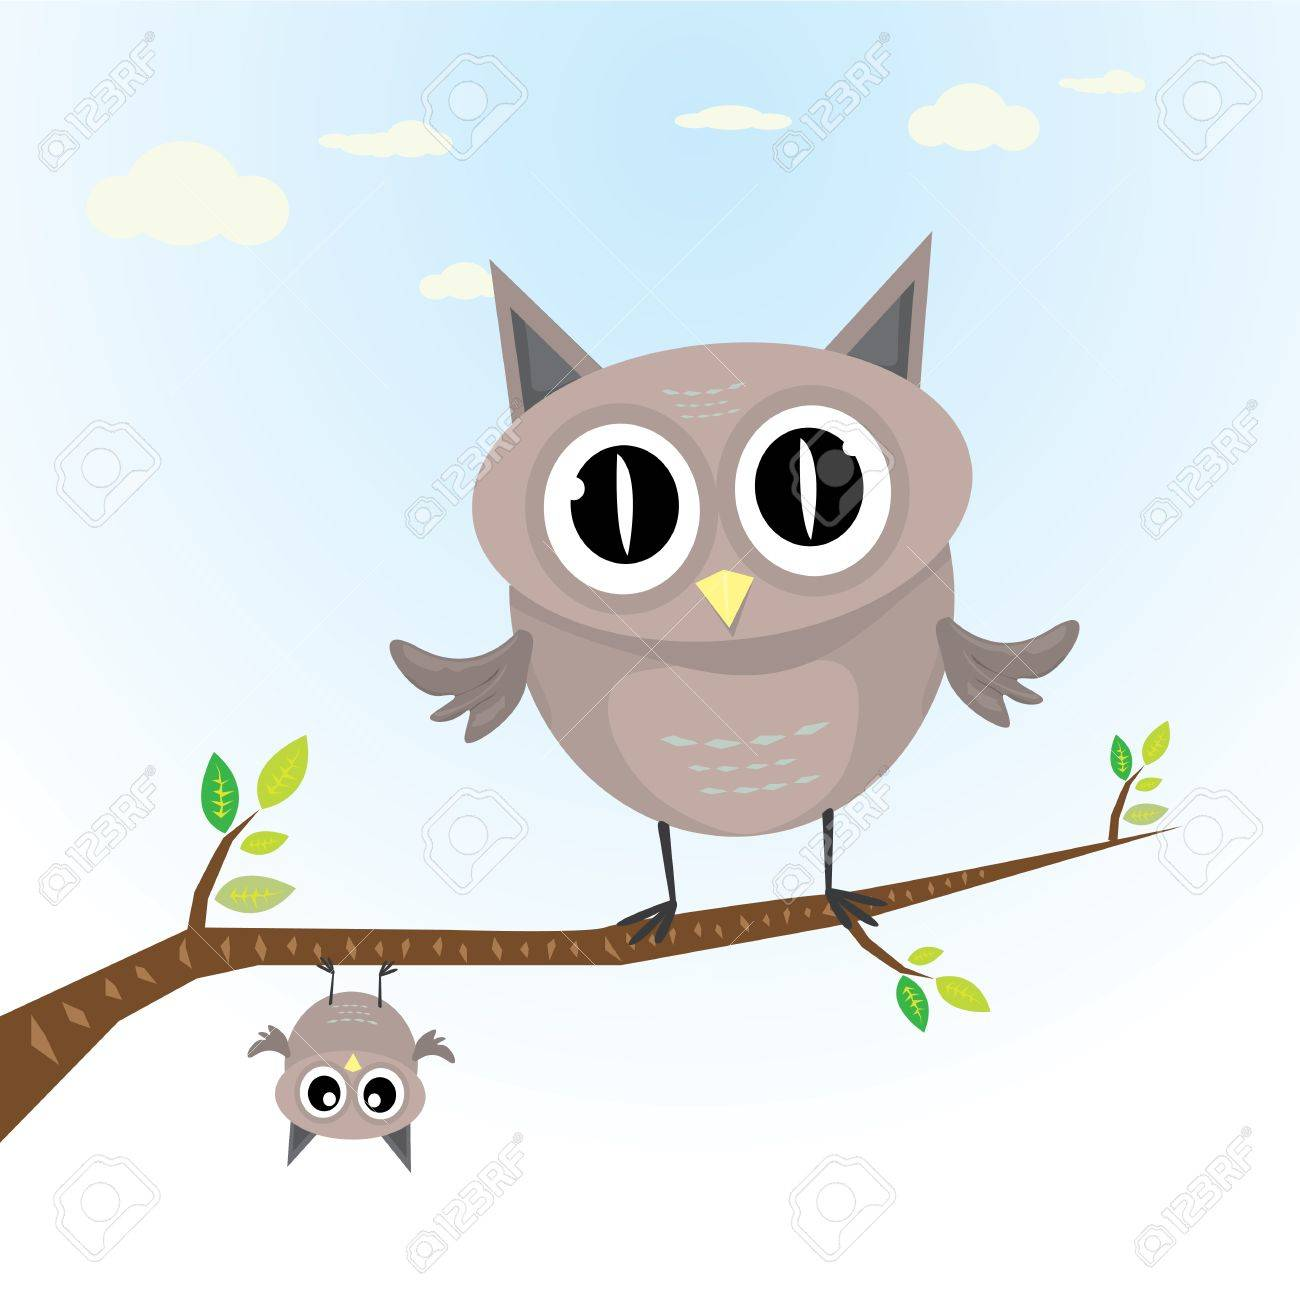 Vector Cartoon Cute Little Owl Bird On Tree Branch Royalty Free Cliparts Vectors And Stock Illustration Image 24454434 Over 672 hoot owl pictures to choose from, with no signup needed. 123rf com